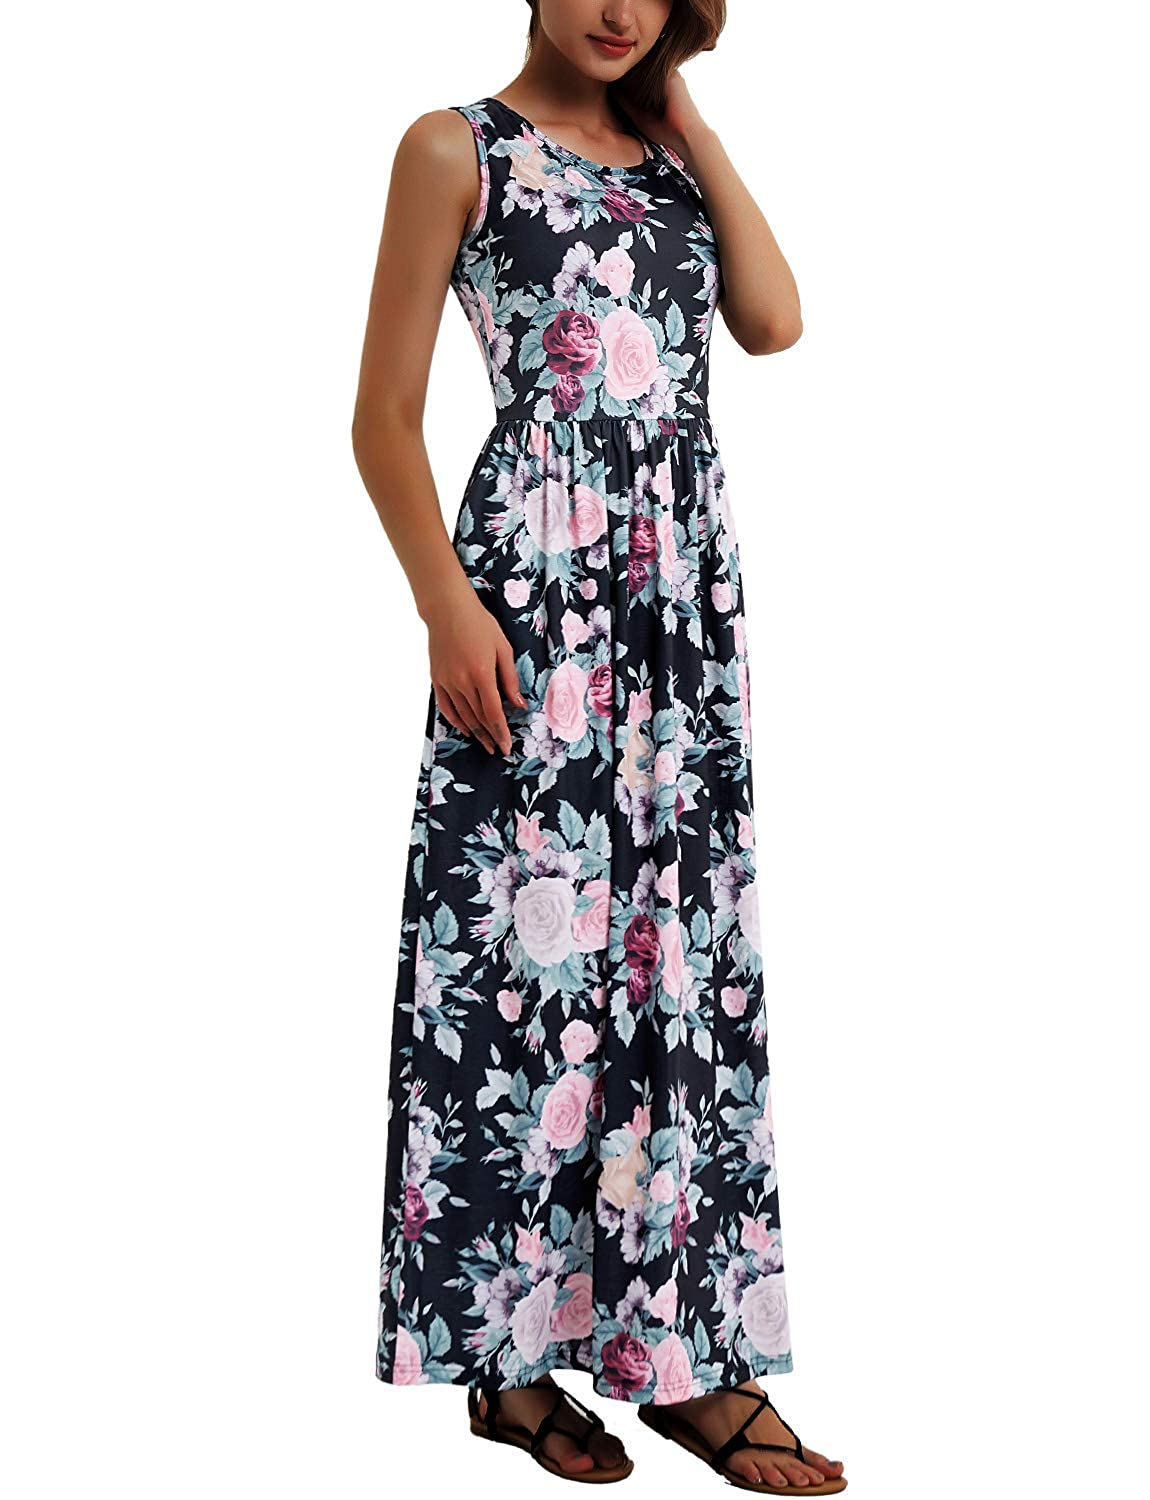 Black Pink Flower Women's Floral Maxi Dress Sleeveless Party Evening Long Dress with Pockets